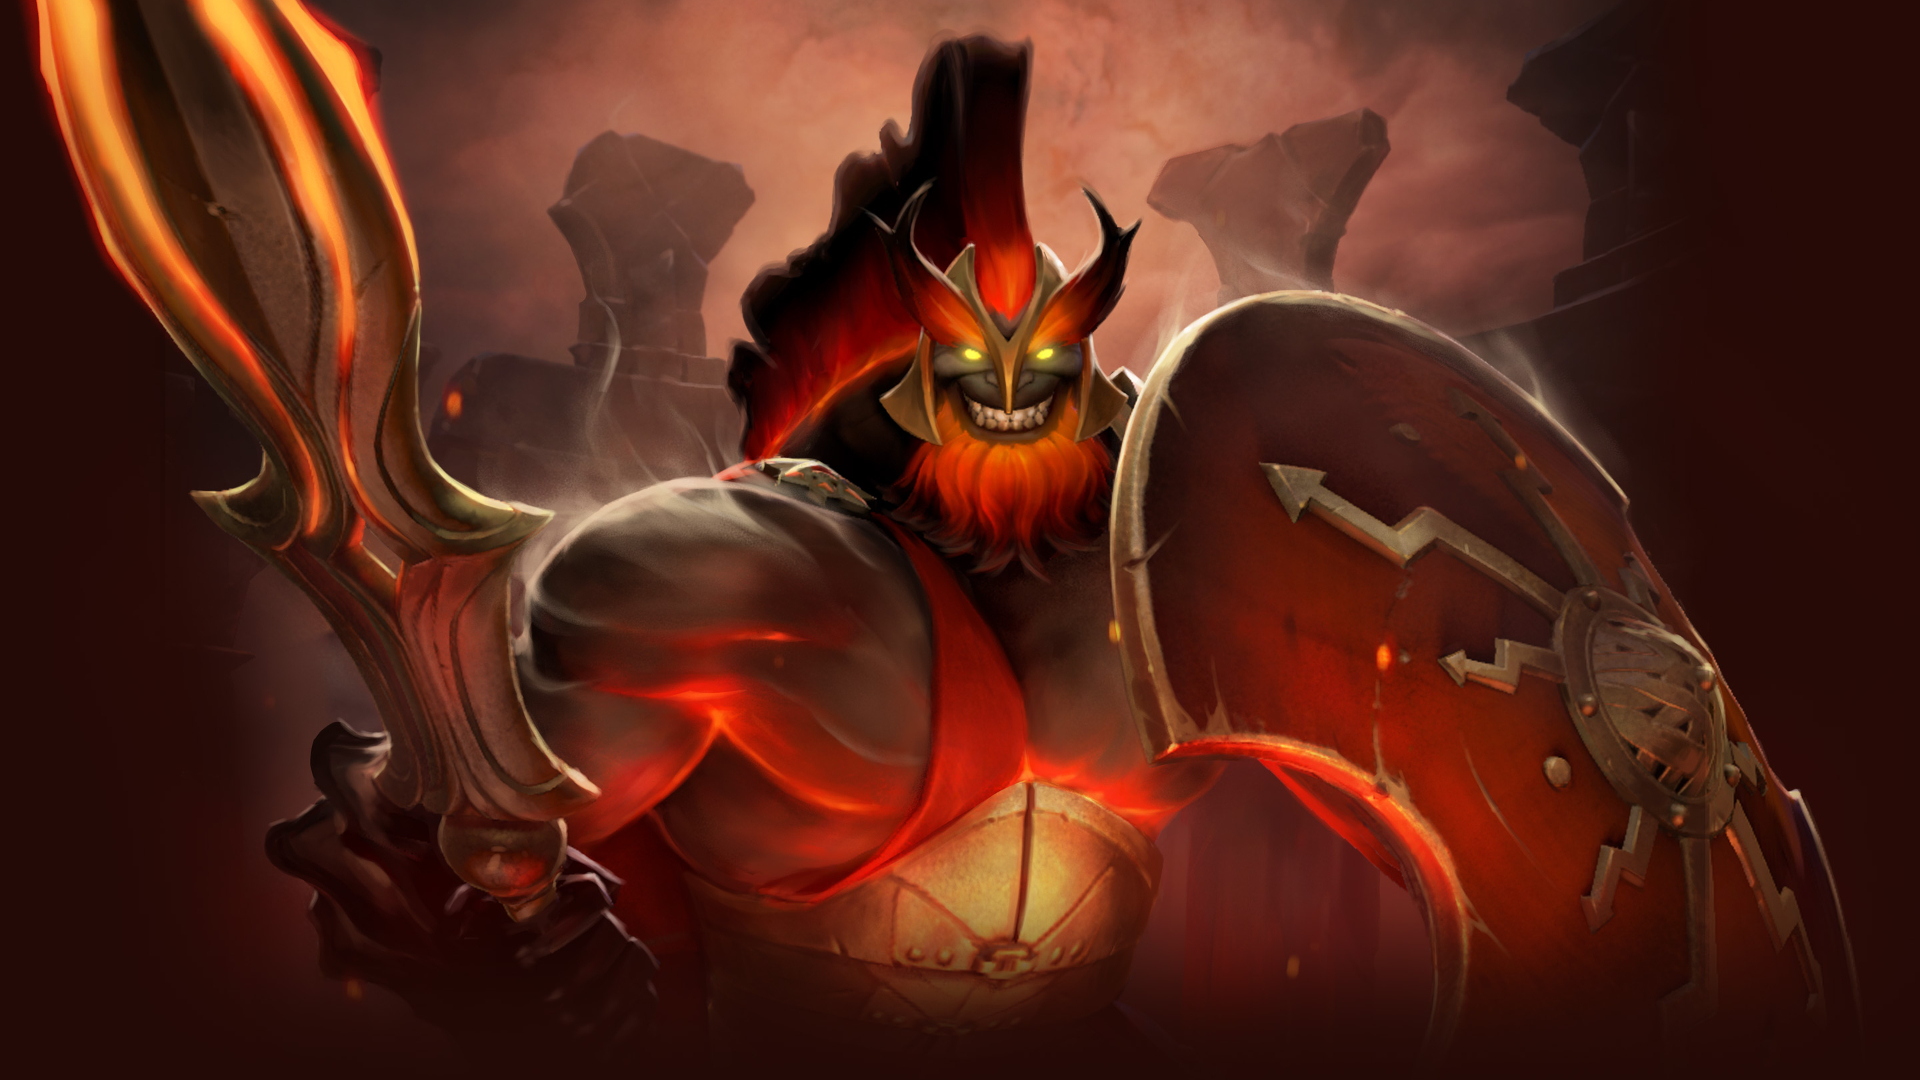 Dota 2 cheats explained: All the commands for heroes, items, and more - Download Dota 2 cheats explained: All the commands for heroes, items, and more for FREE - Free Cheats for Games